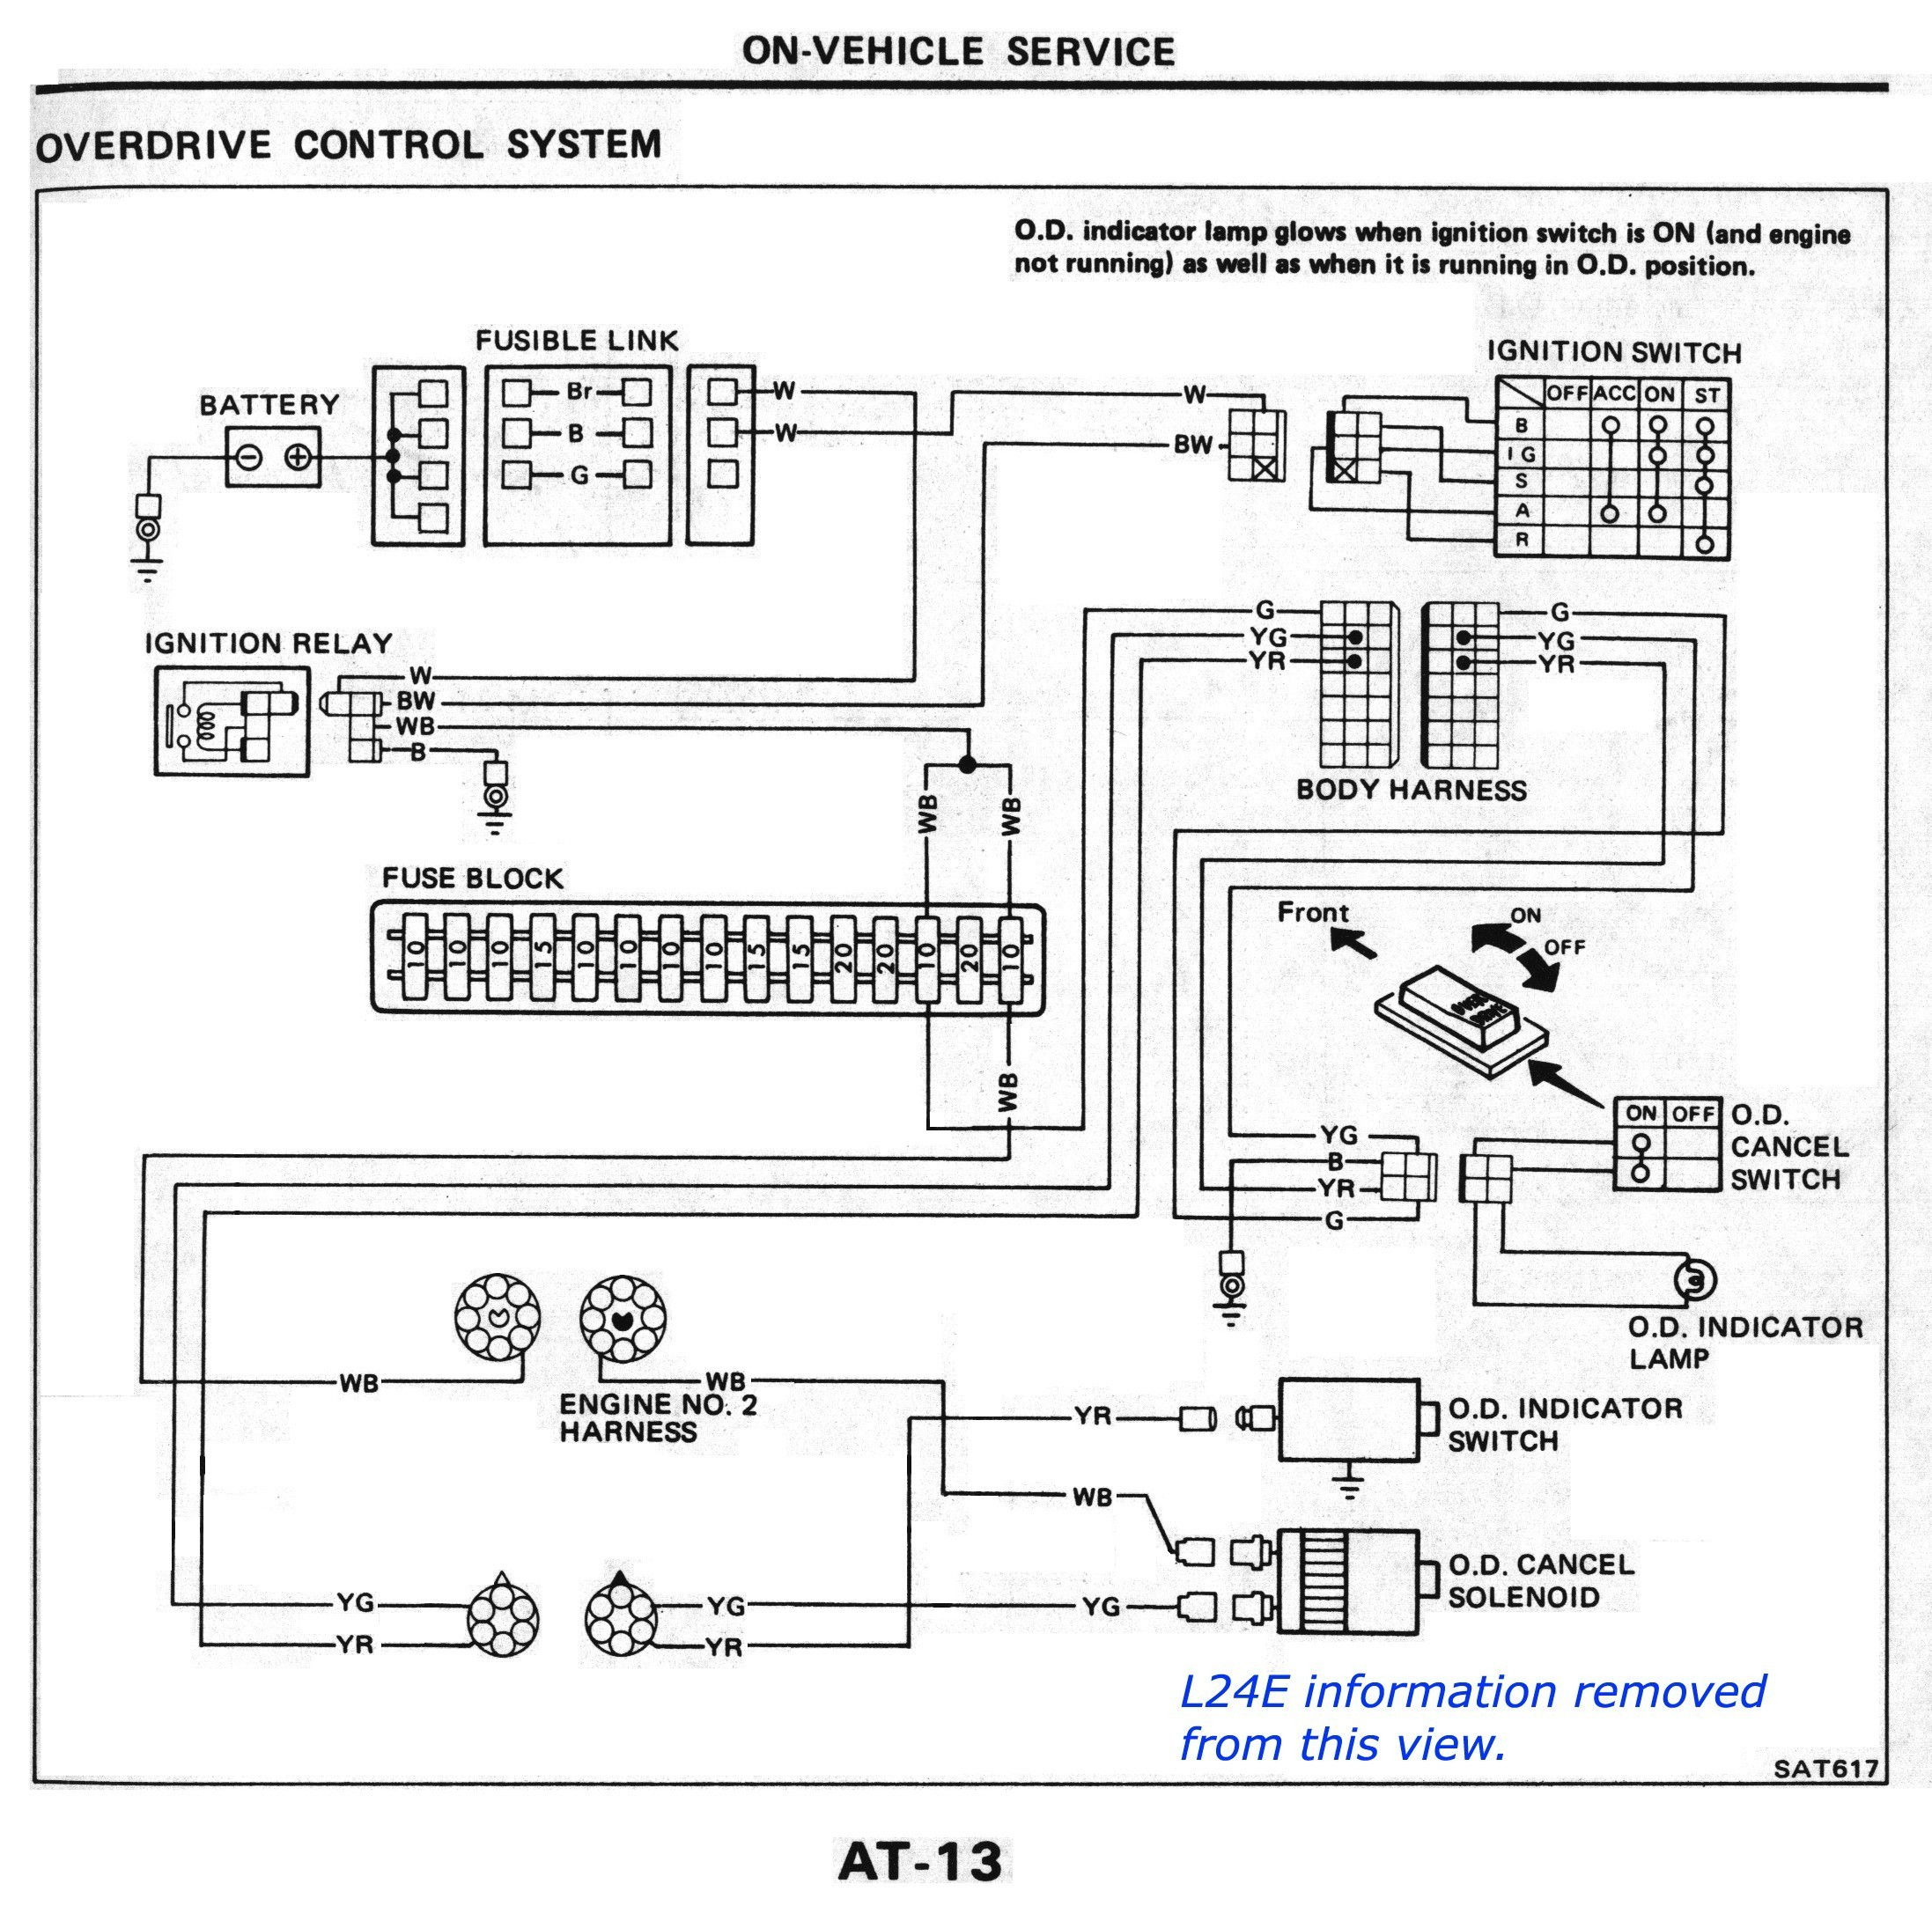 Truck Air Brake System Diagram Manual Engine Start button Wiring Diagram Image Of Truck Air Brake System Diagram Manual Volvo Brake Wiring Library Wiring Diagram •